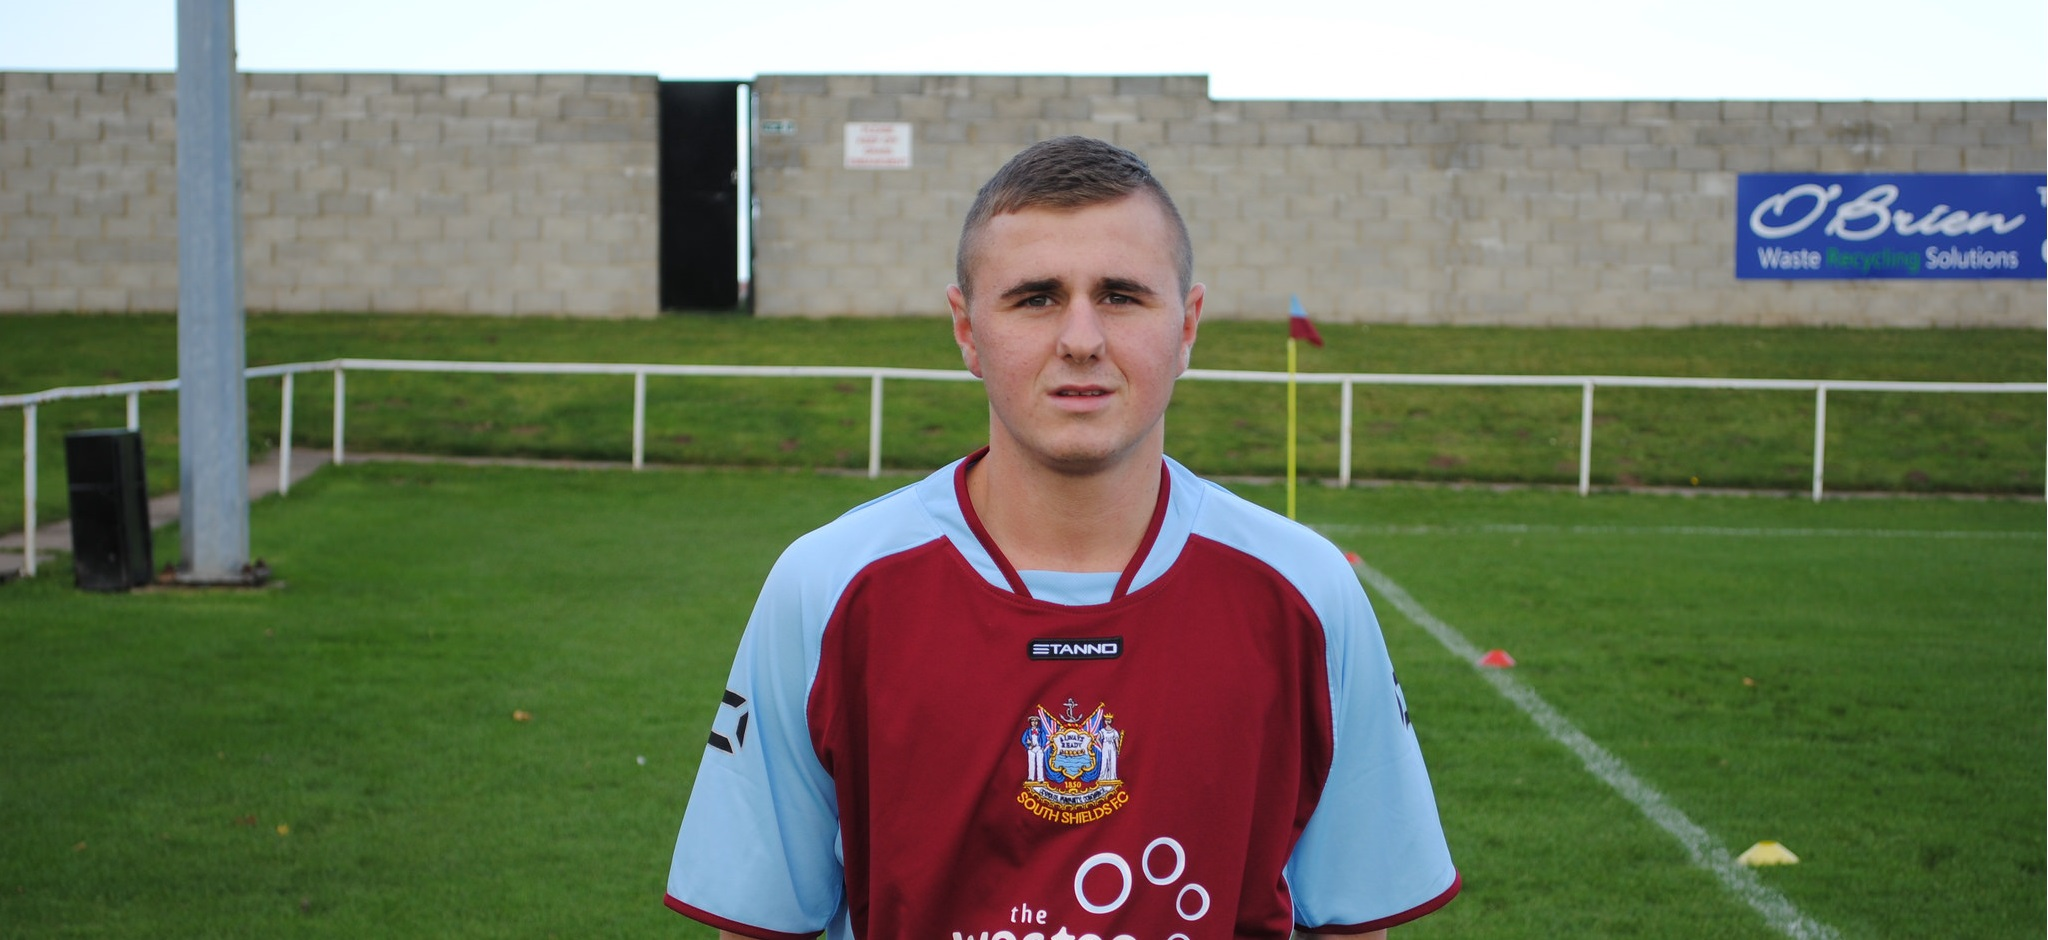 SSFC Reserves 3-2 Stokesley: Reserves' improvement continues with win